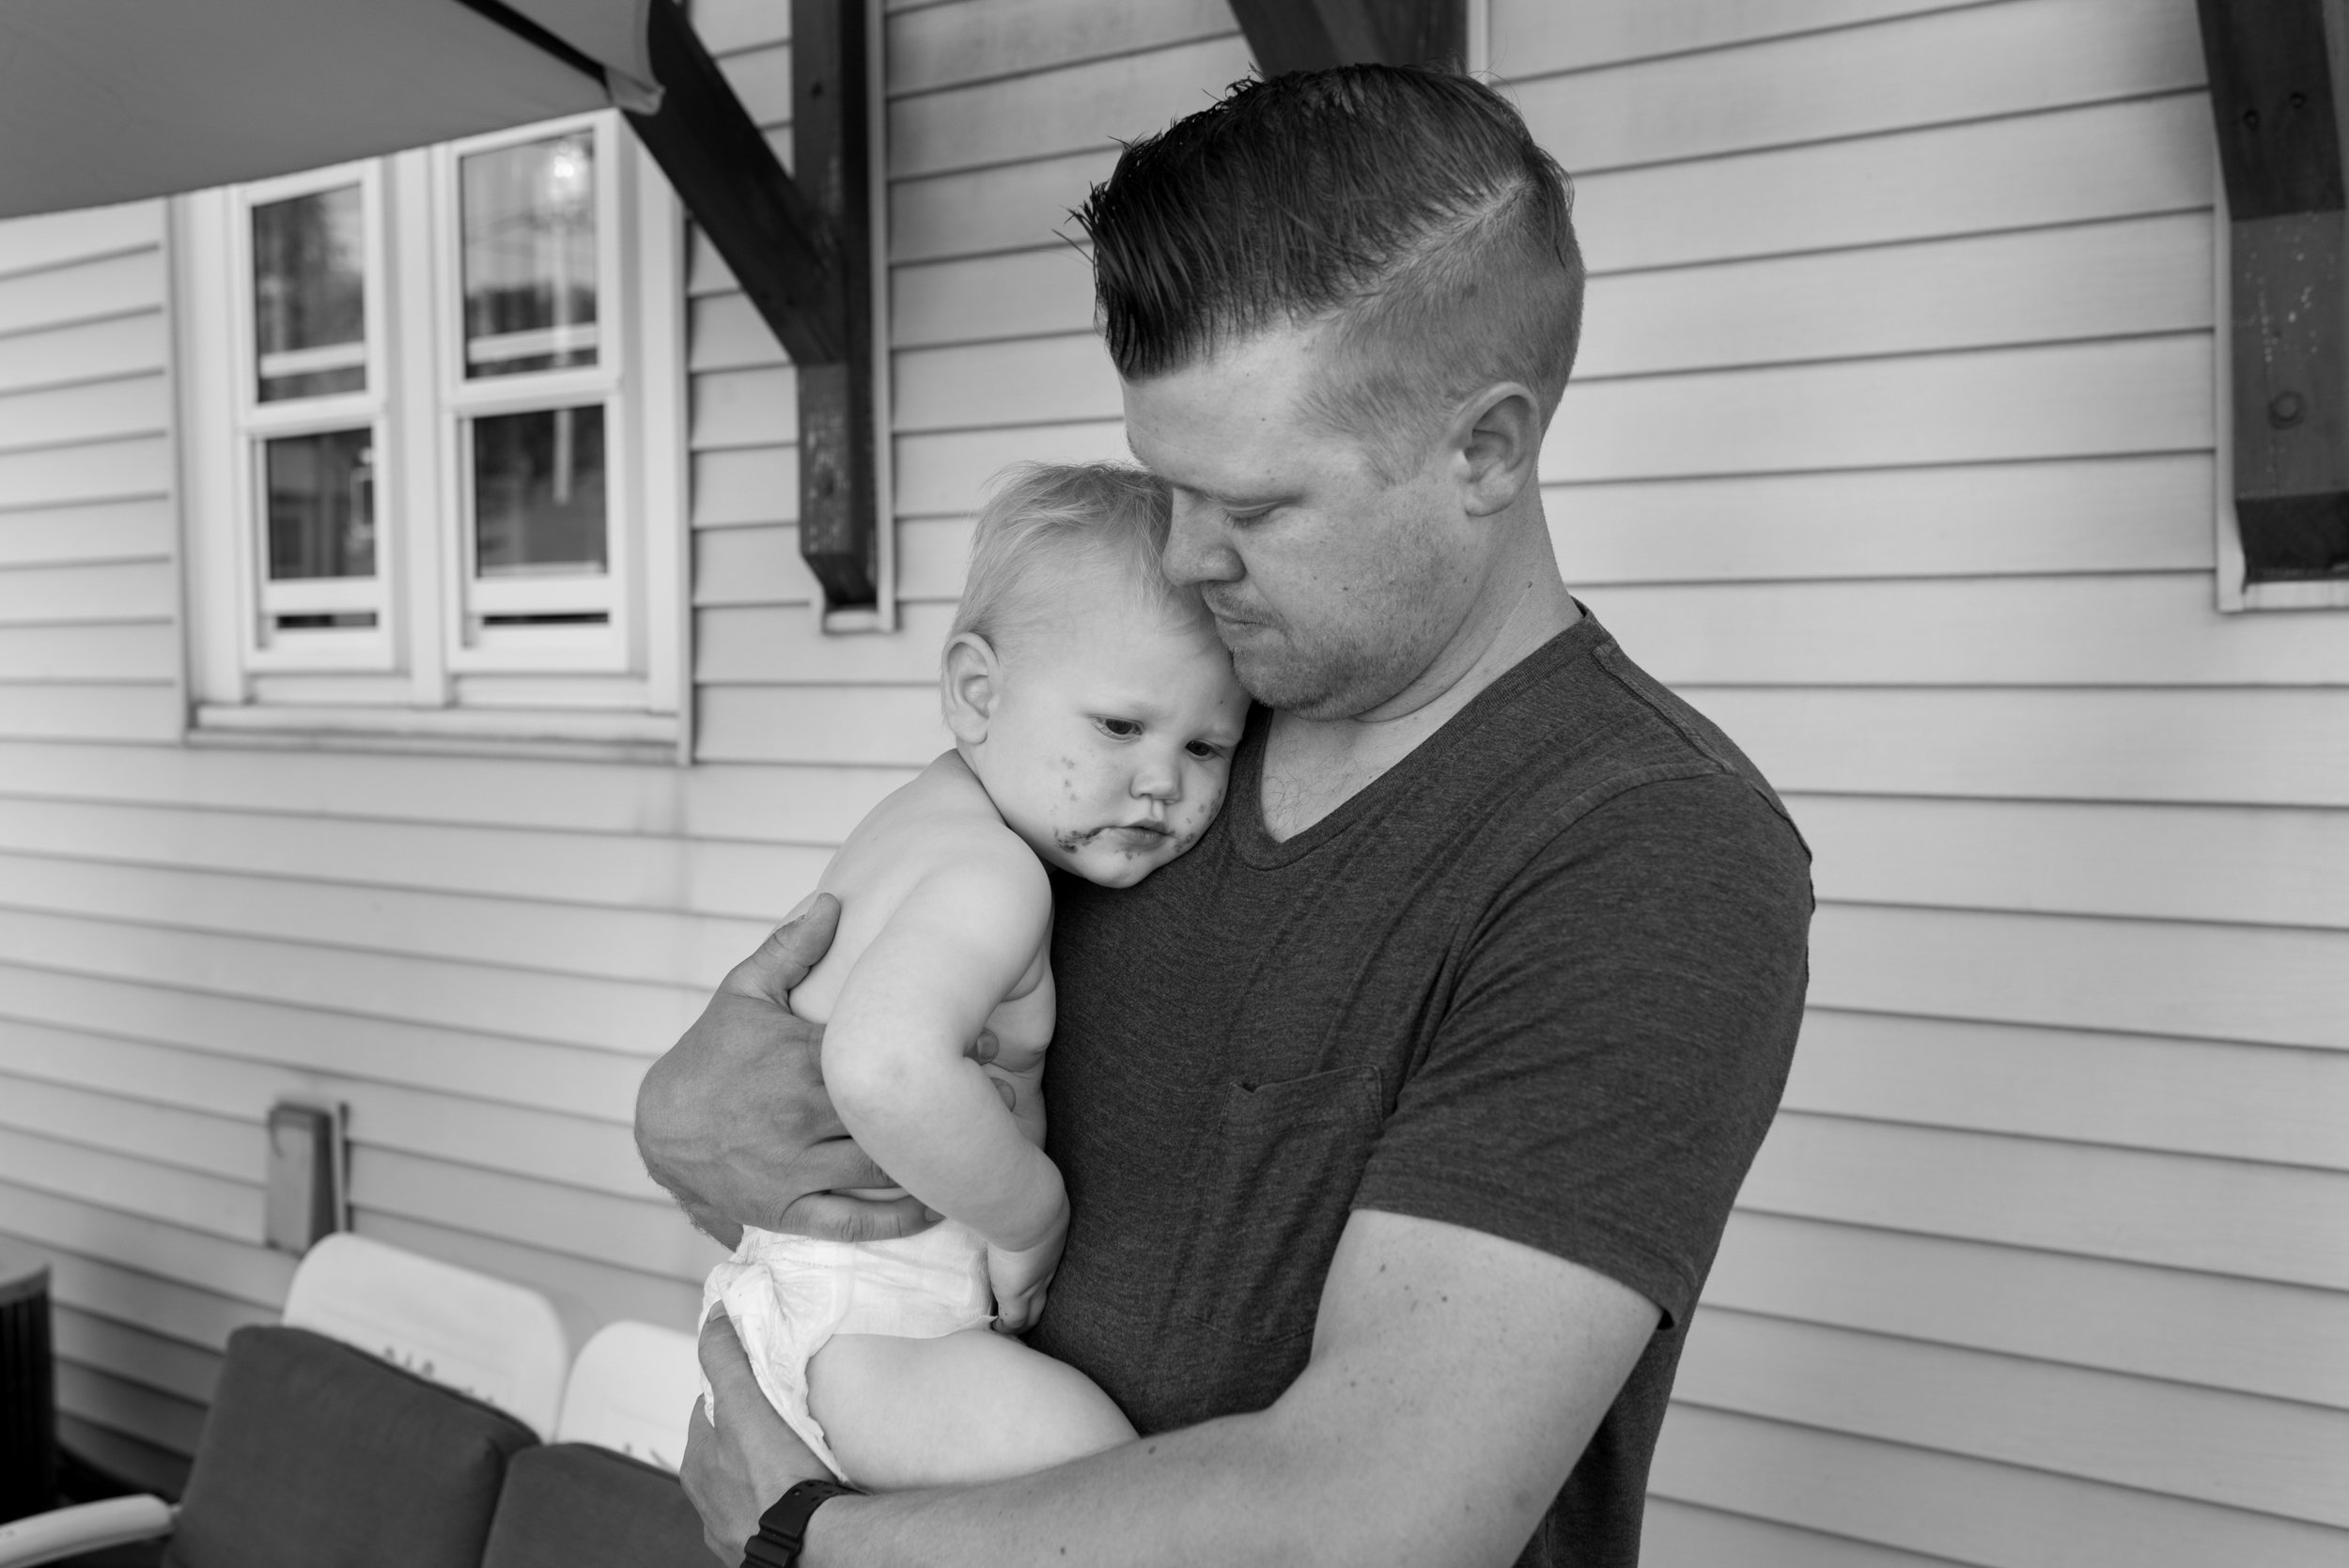 Dad holding young son against his chest during Wauwatosa Photography Session